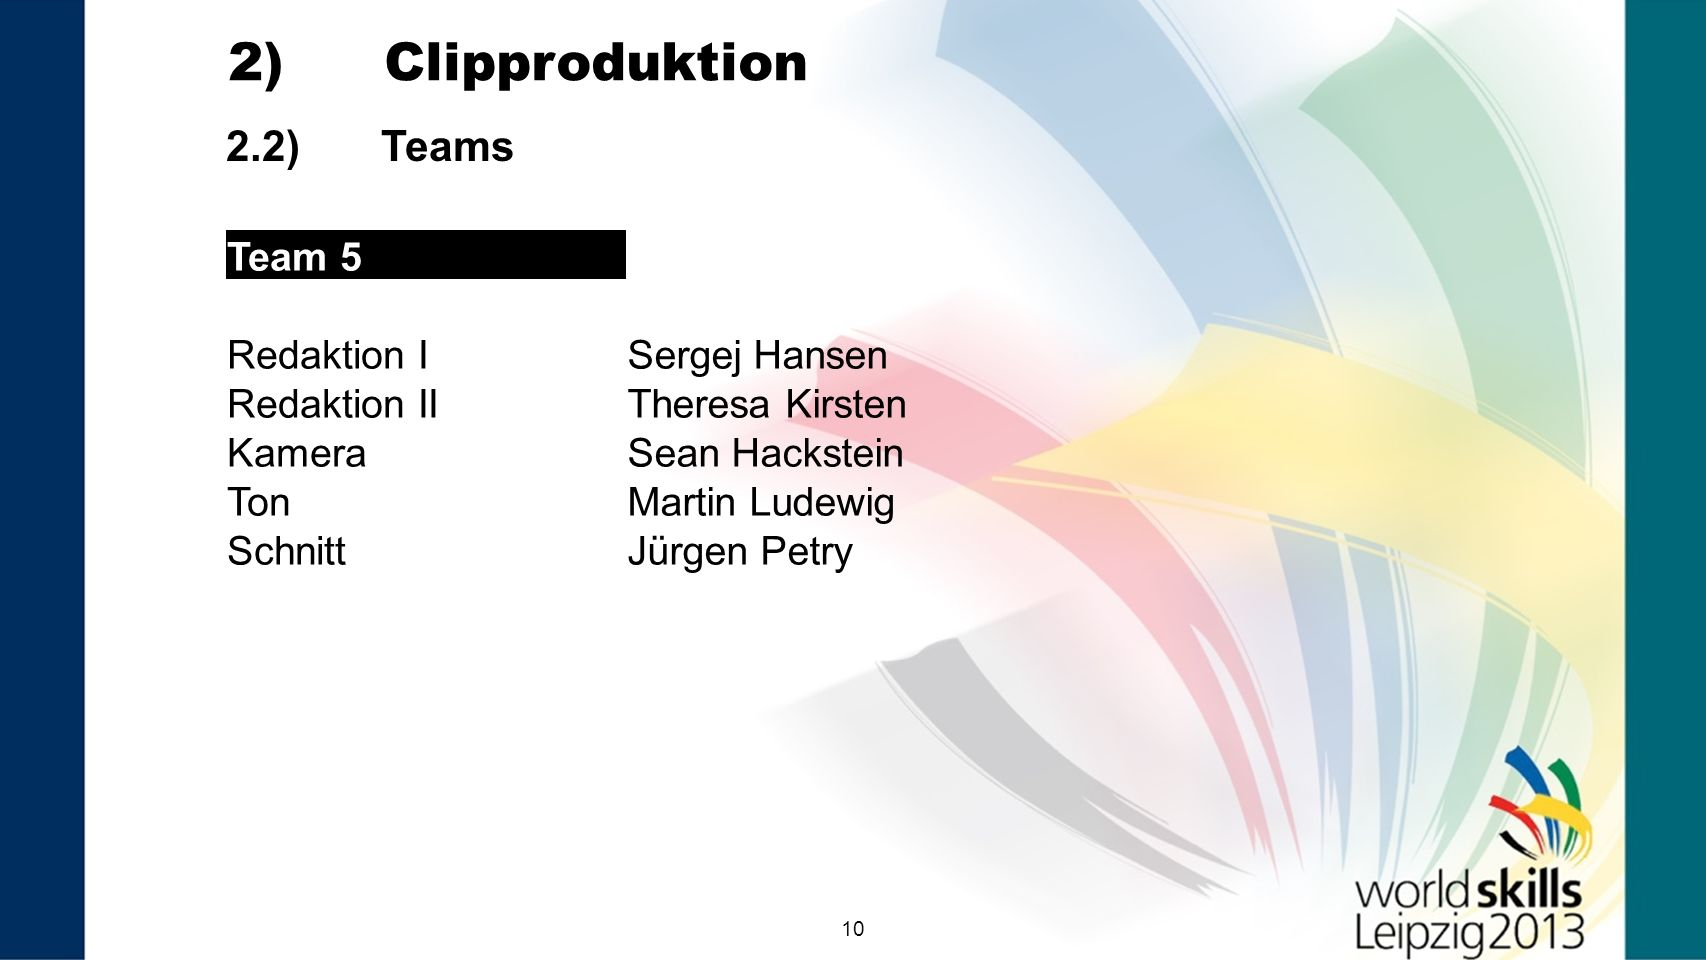 2) Clipproduktion 2.2) Teams Team 5 Redaktion I Sergej Hansen